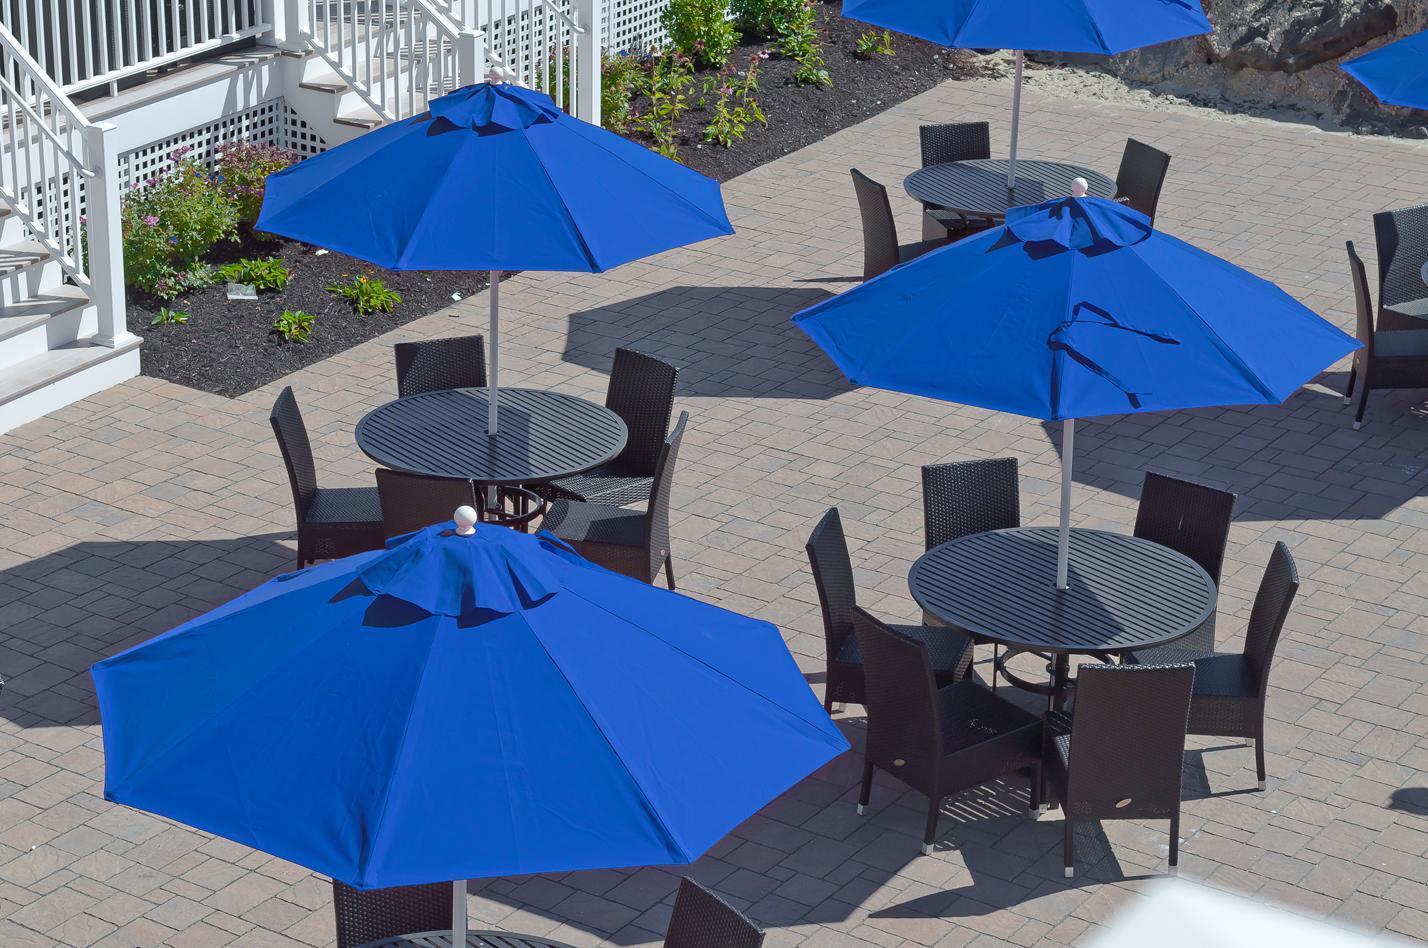 Aluminum Gazebos and Garden Umbrellas